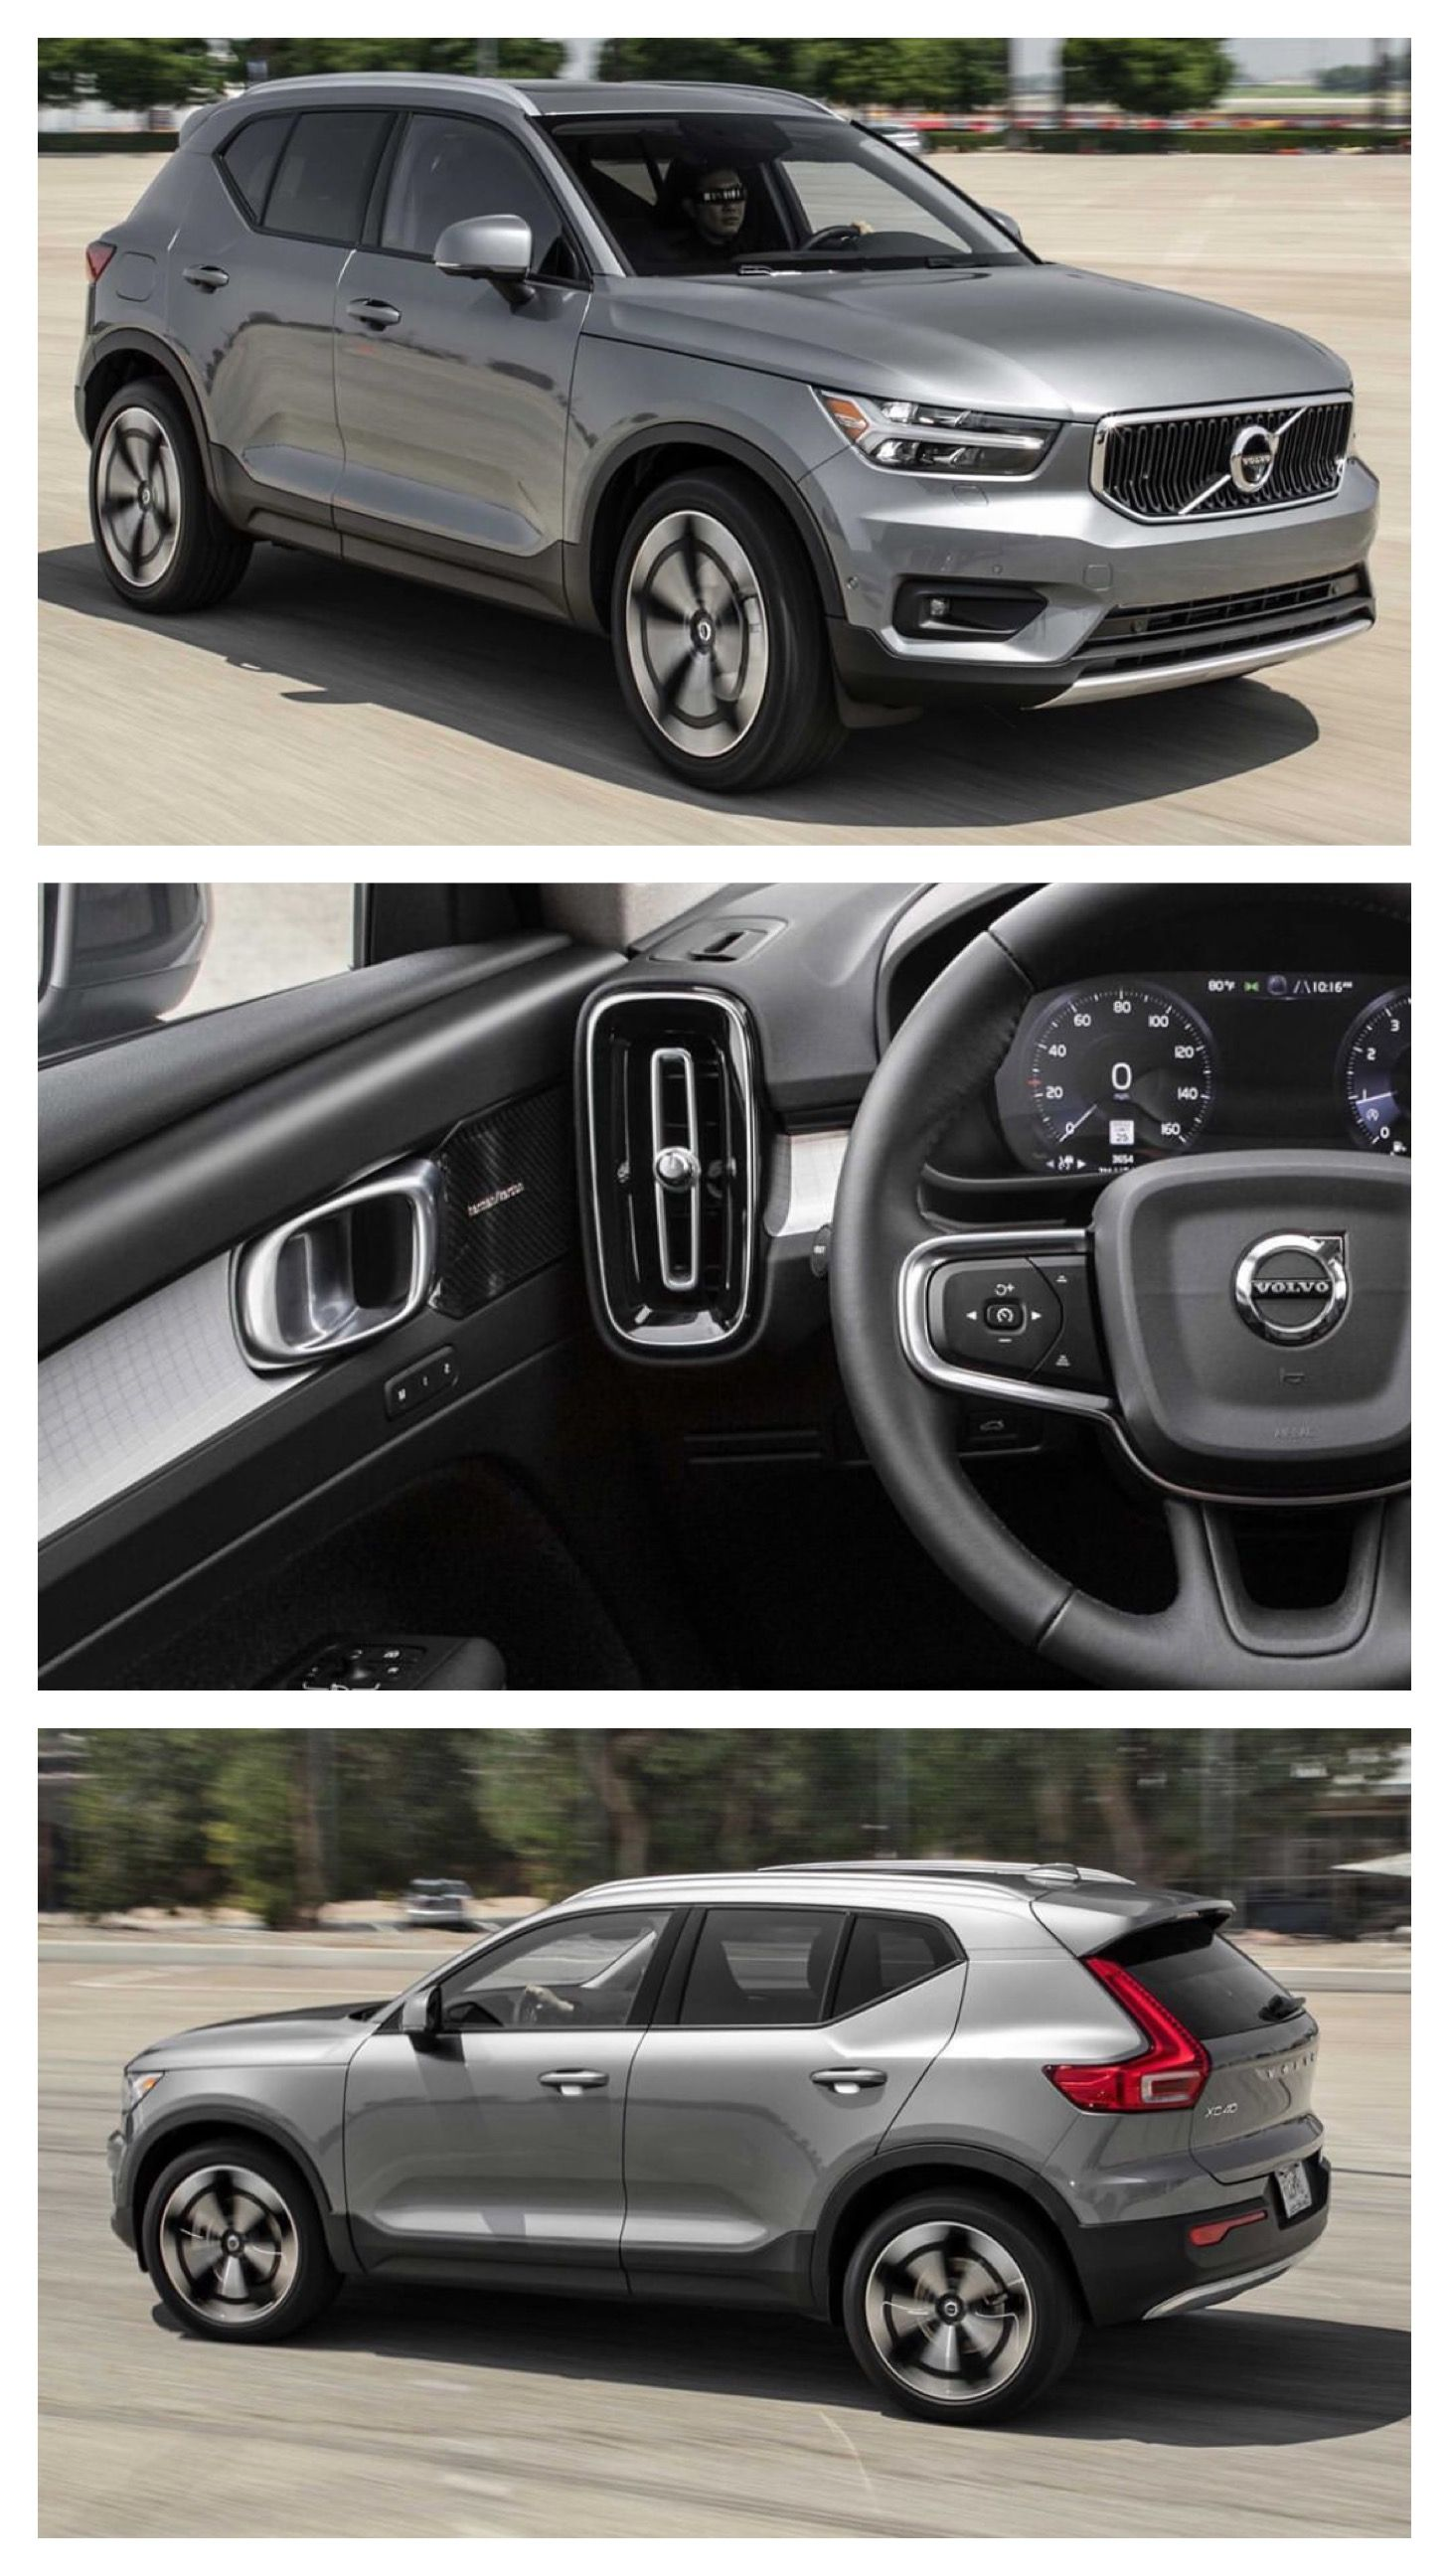 The Luxury Compact Suv The Volvo Xc40 Suv Volvo Volvo Cars